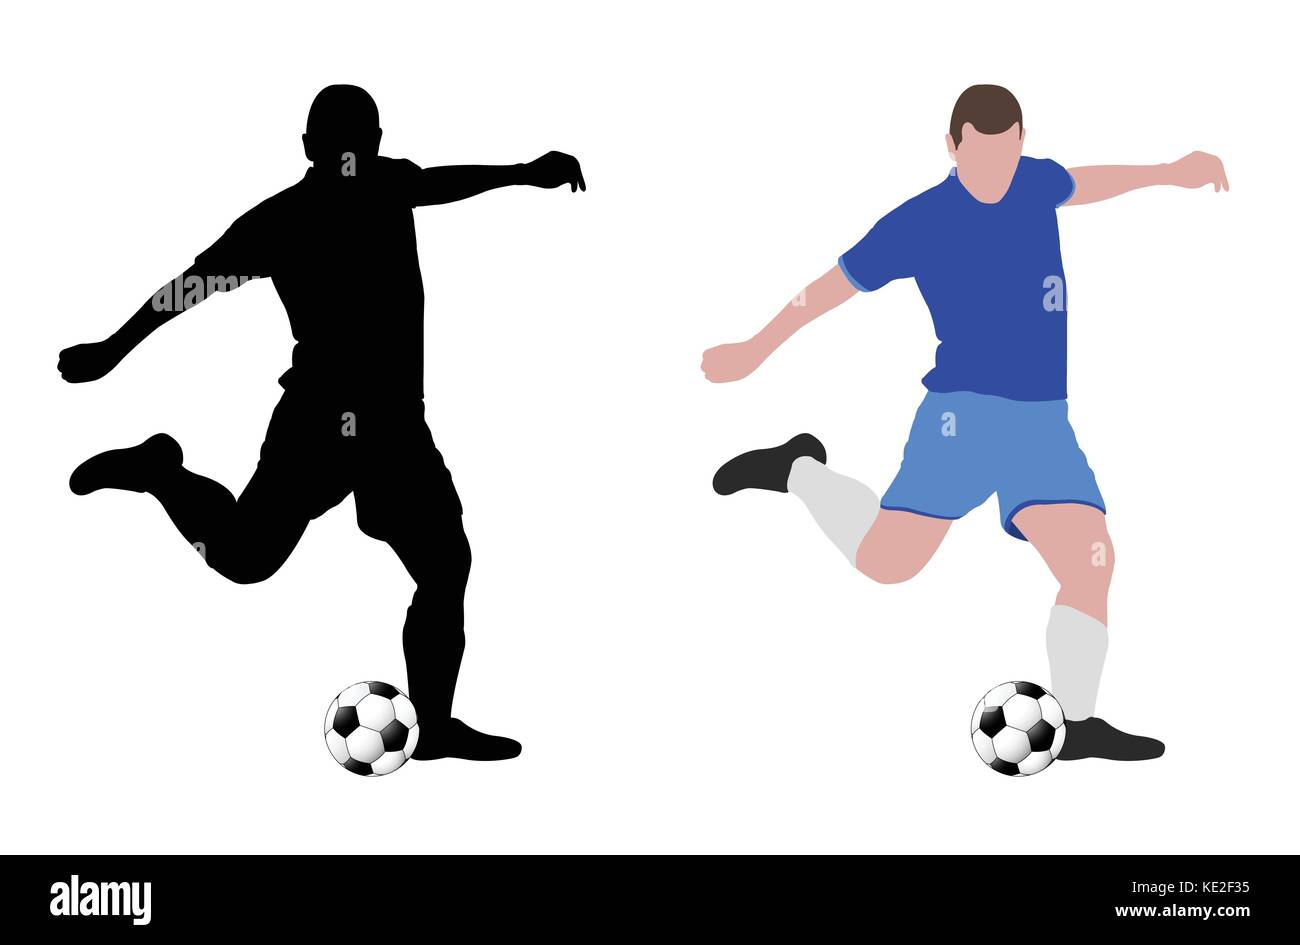 Soccer Player Vector Illustration Stock Vector Art Illustration